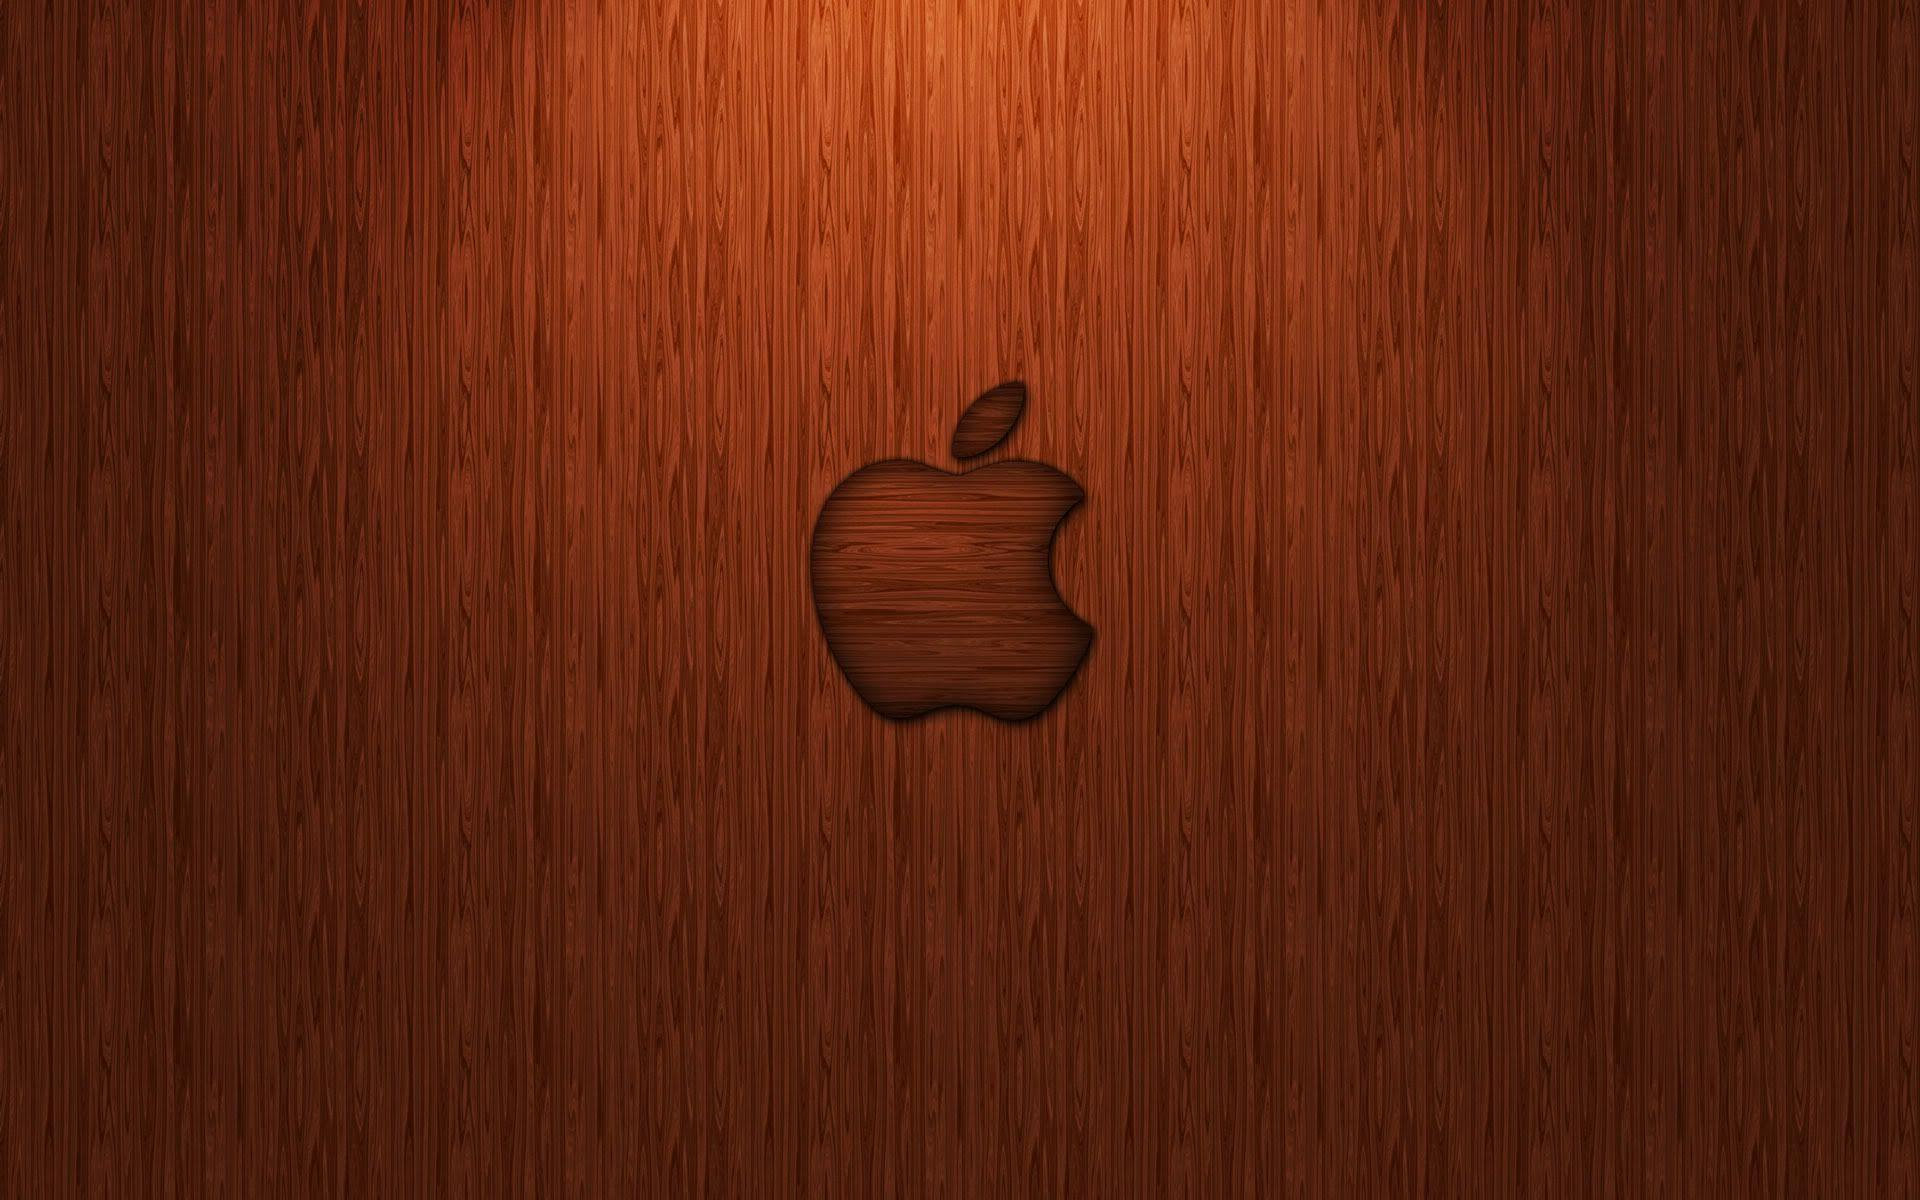 Orange Apple logo Wallpapers